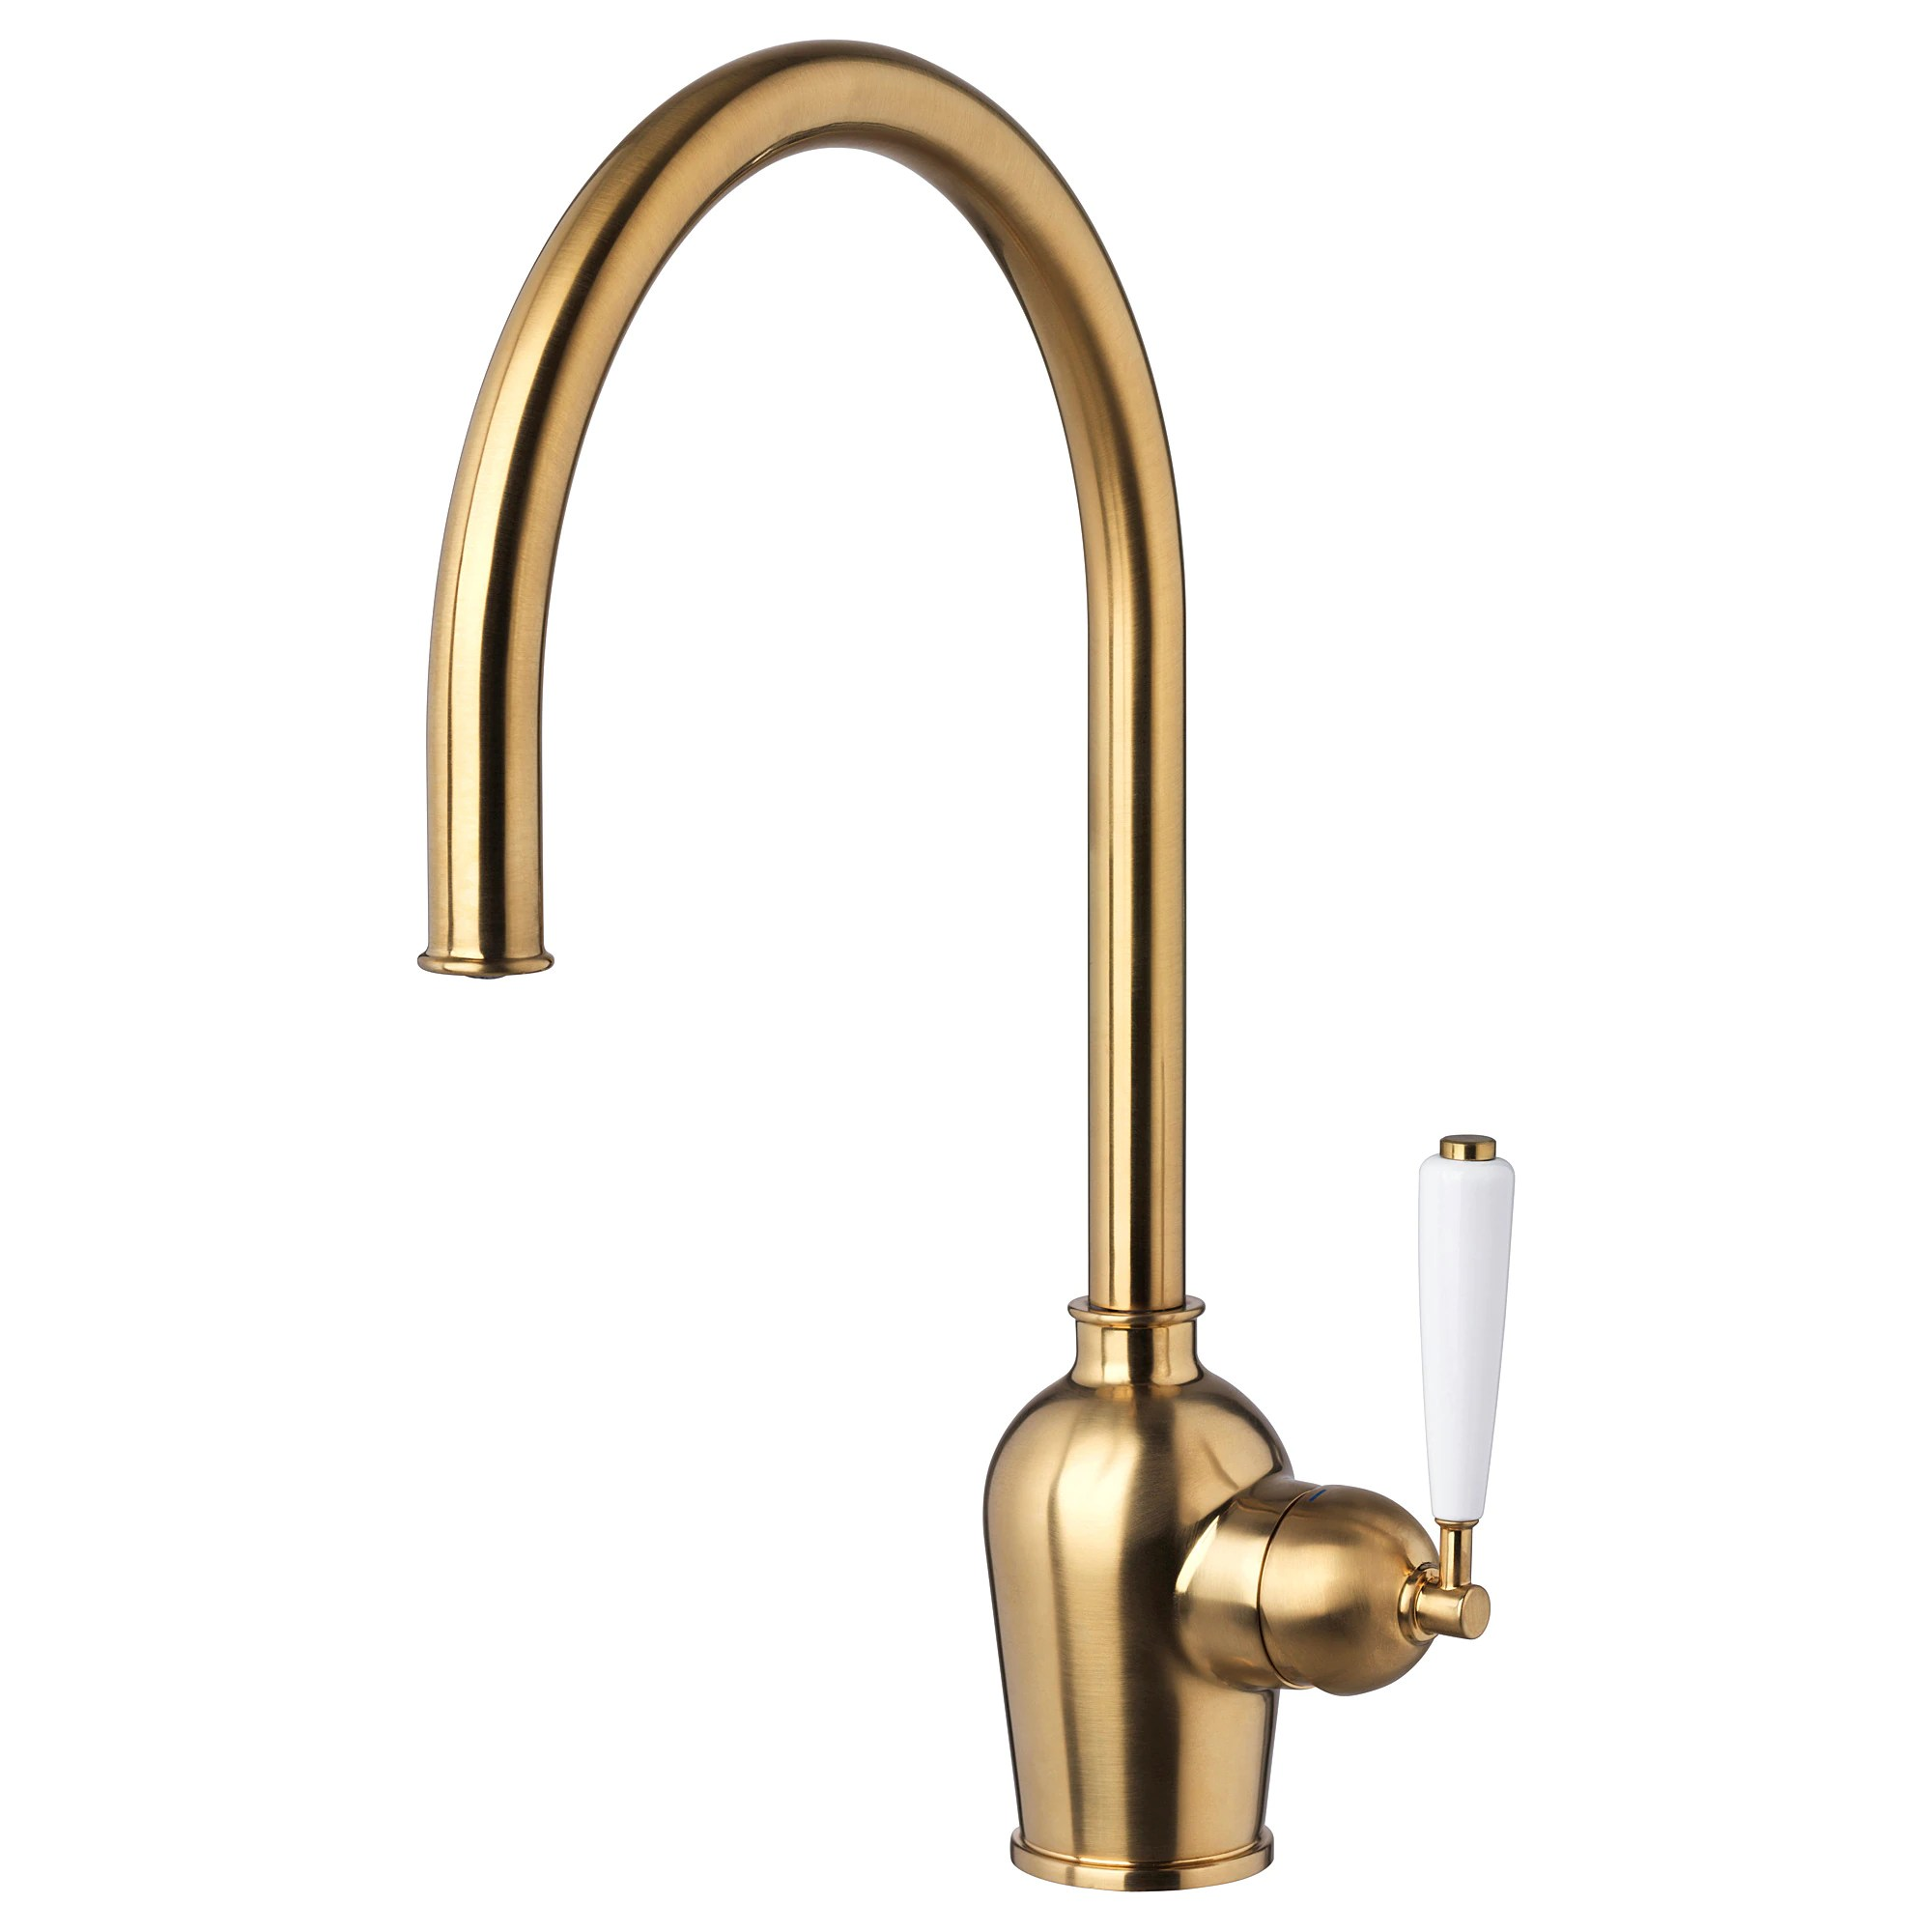 Cool Kitchen Faucet InsjÖn Kitchen Faucet Brass Color